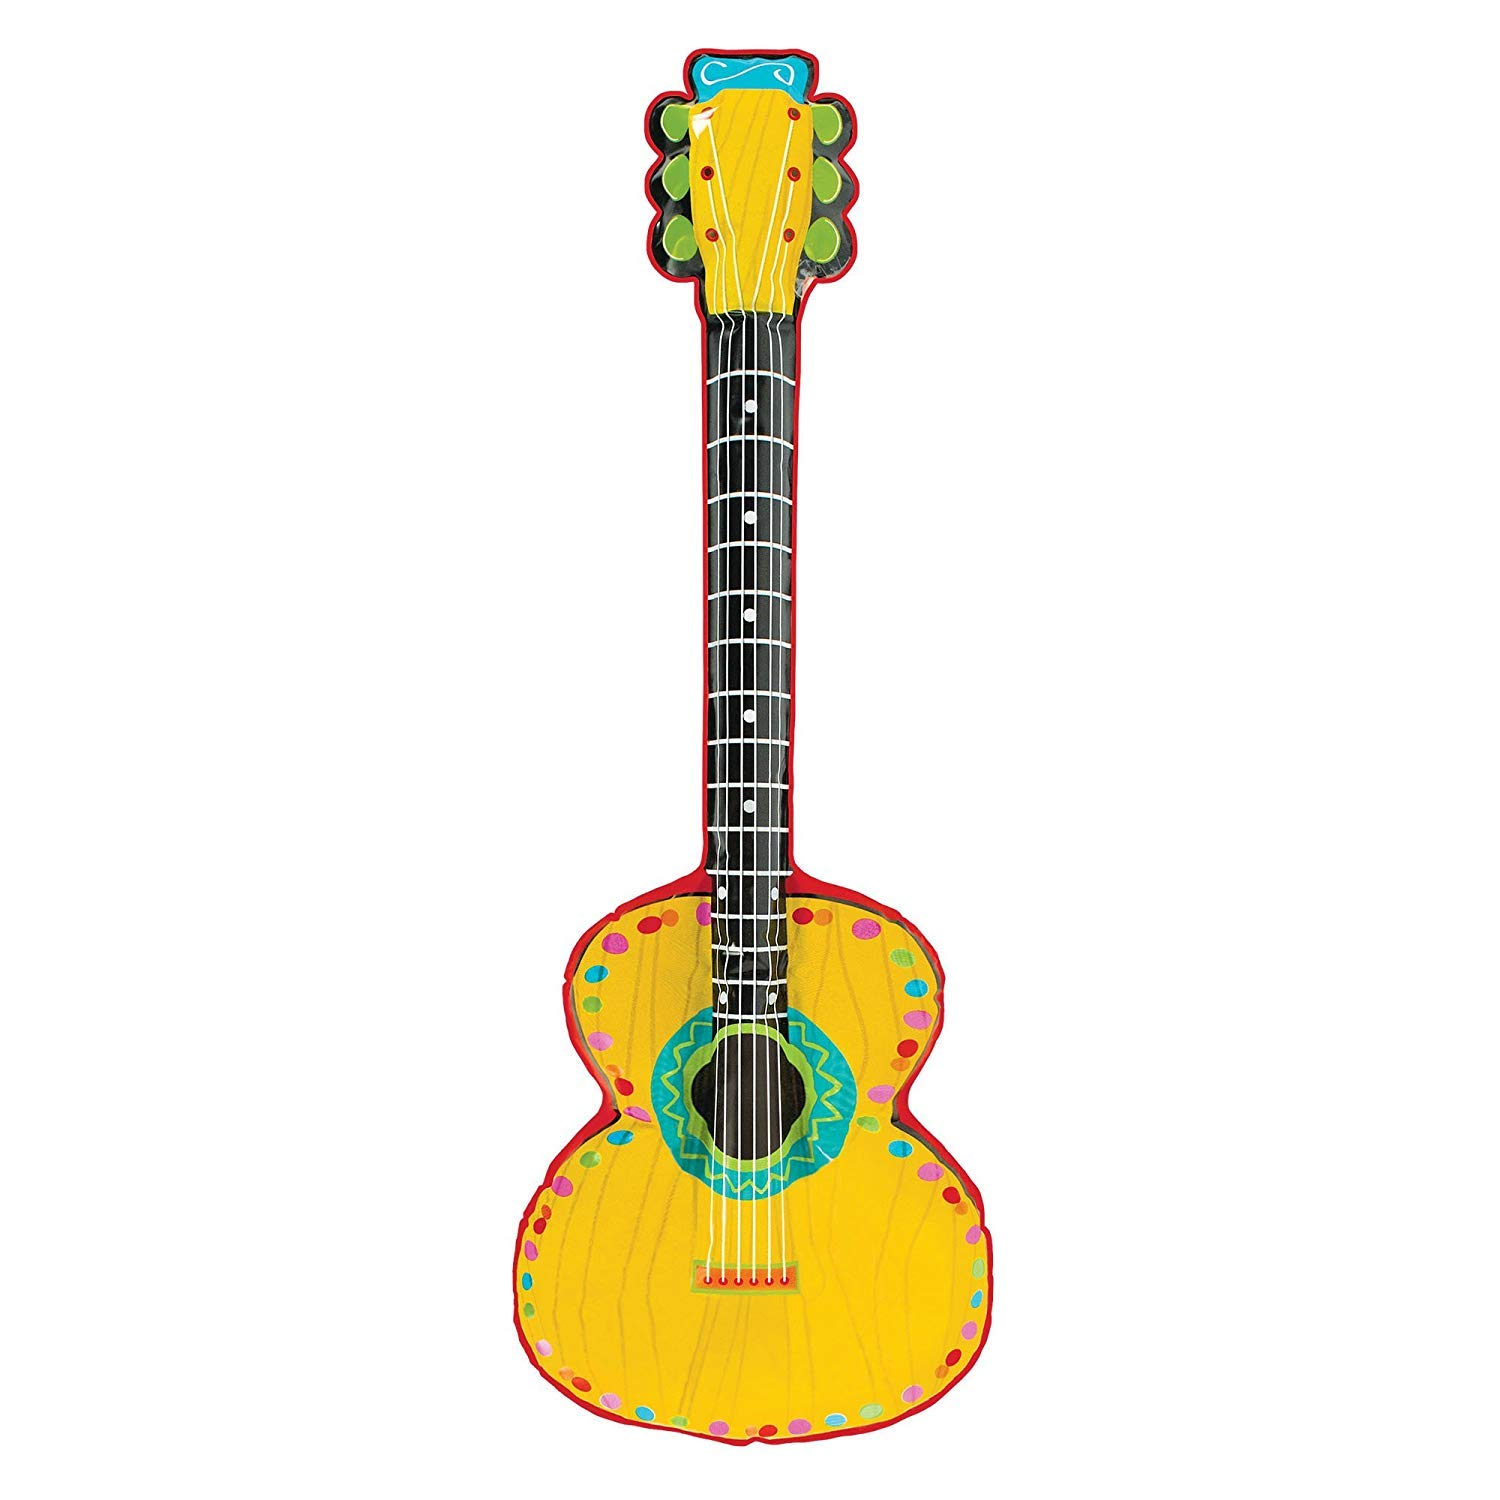 Amazon.com: Mariachi guitarra inflable juguete: Kitchen & Dining